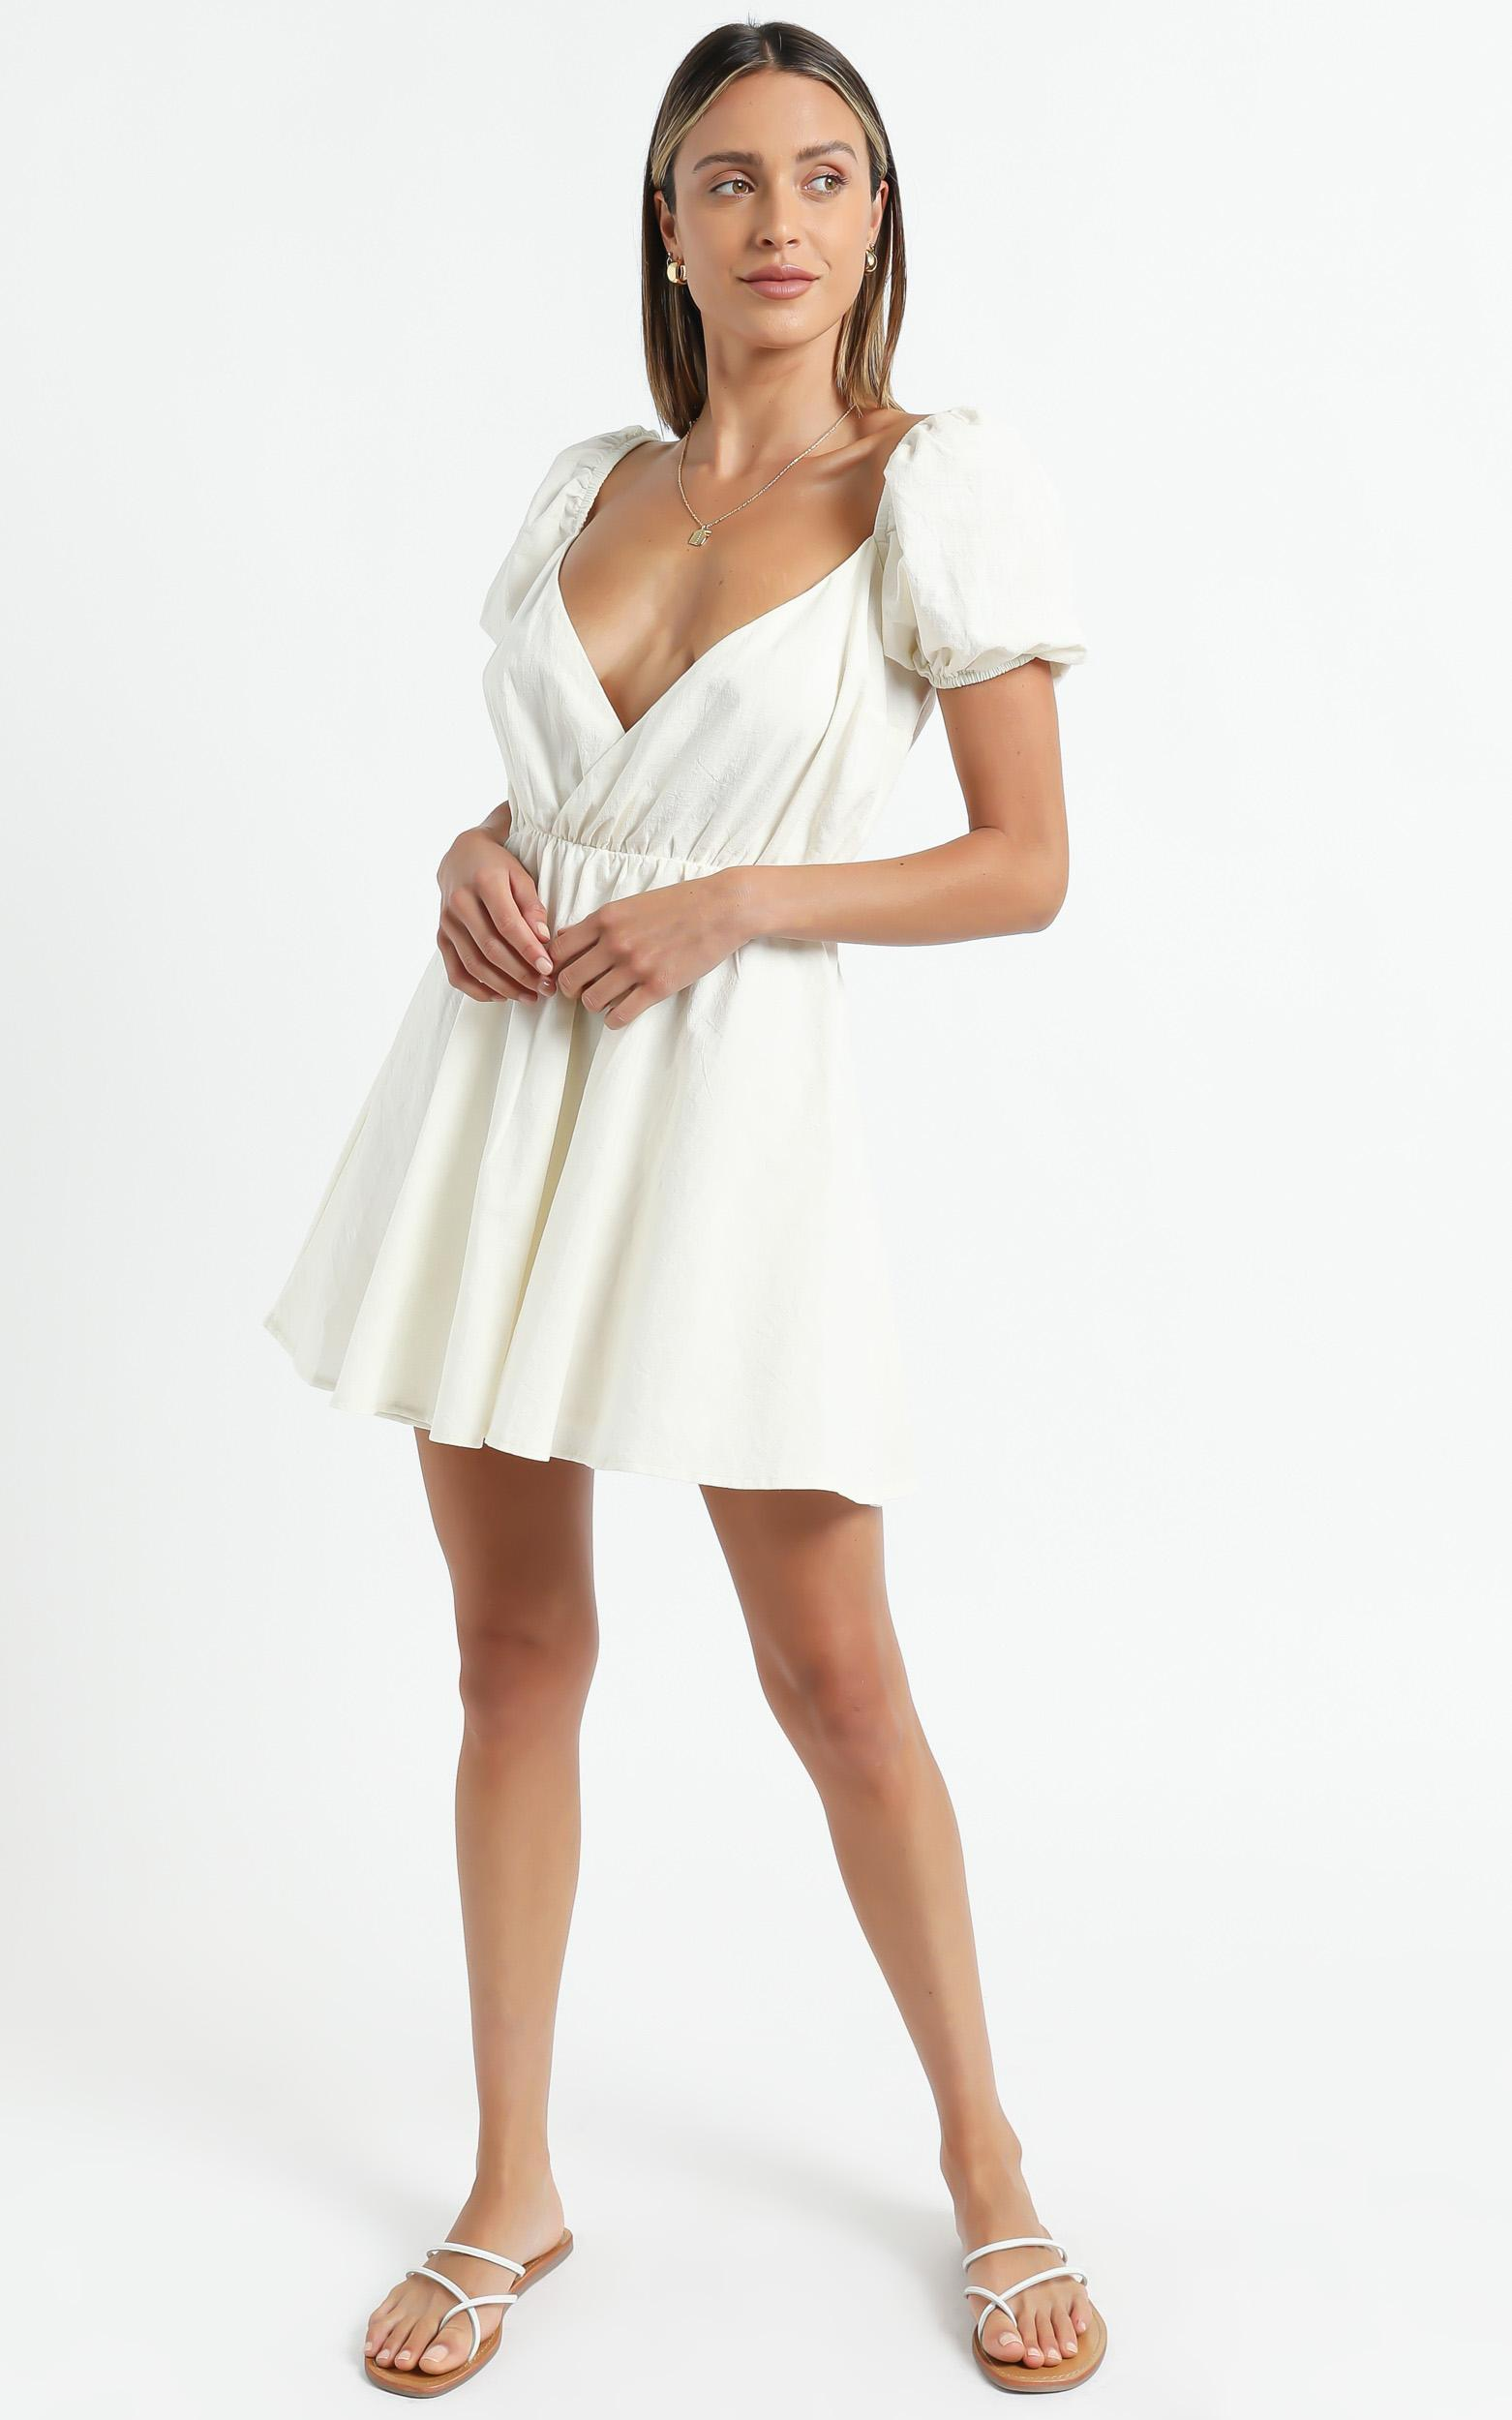 Kamali Dress in Off White, White, hi-res image number null